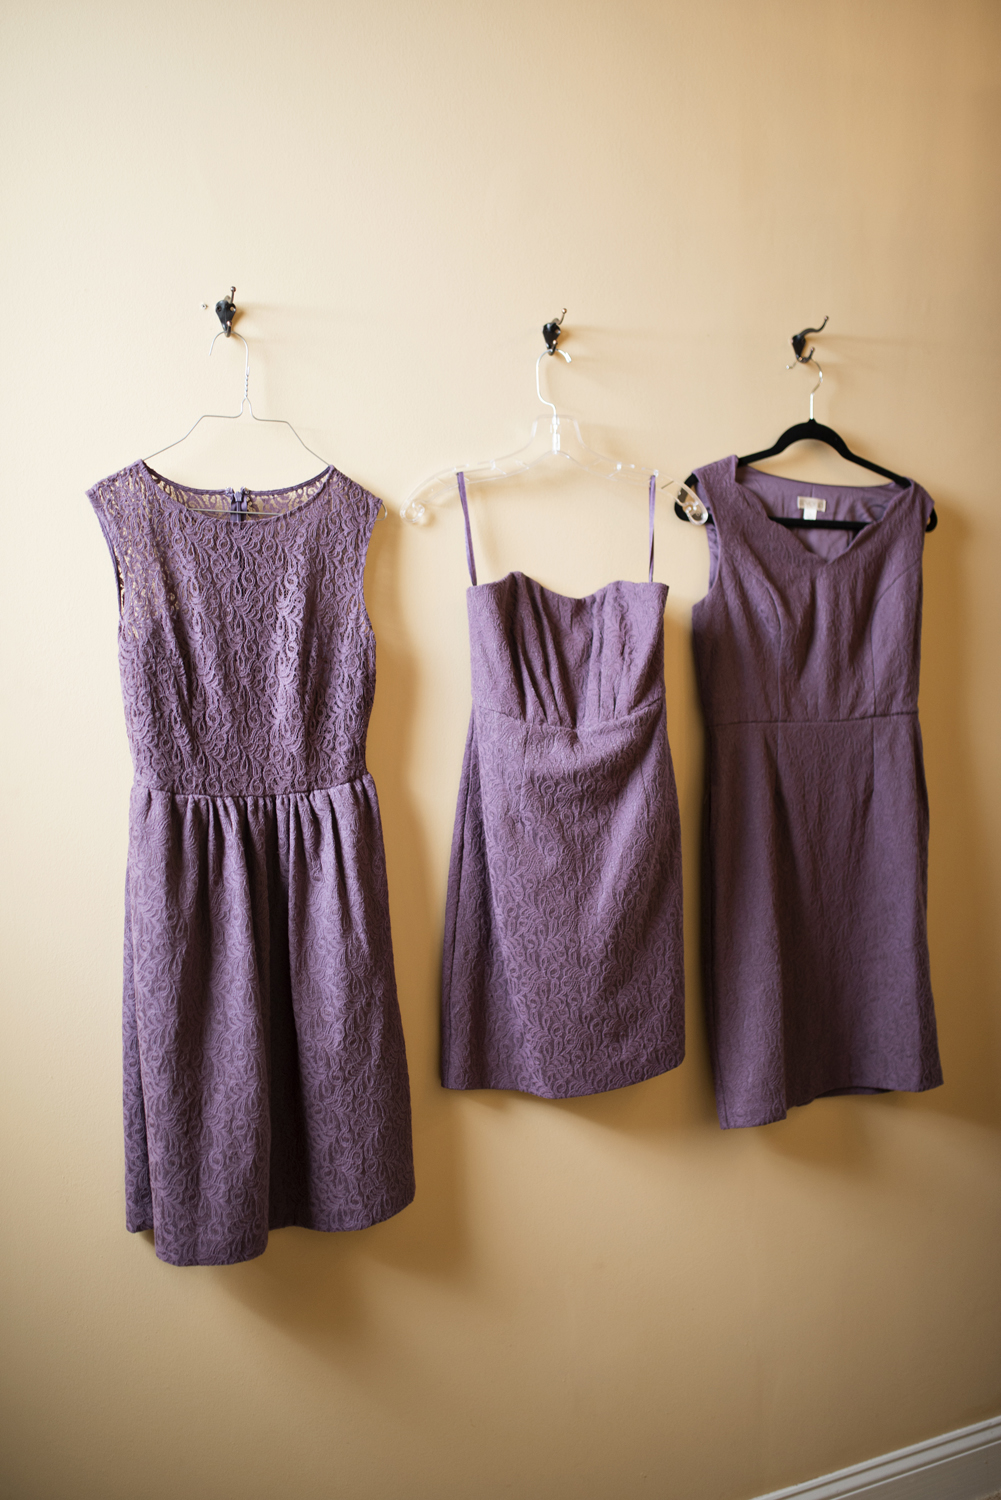 Purple rustic bridesmaid dresses from Target